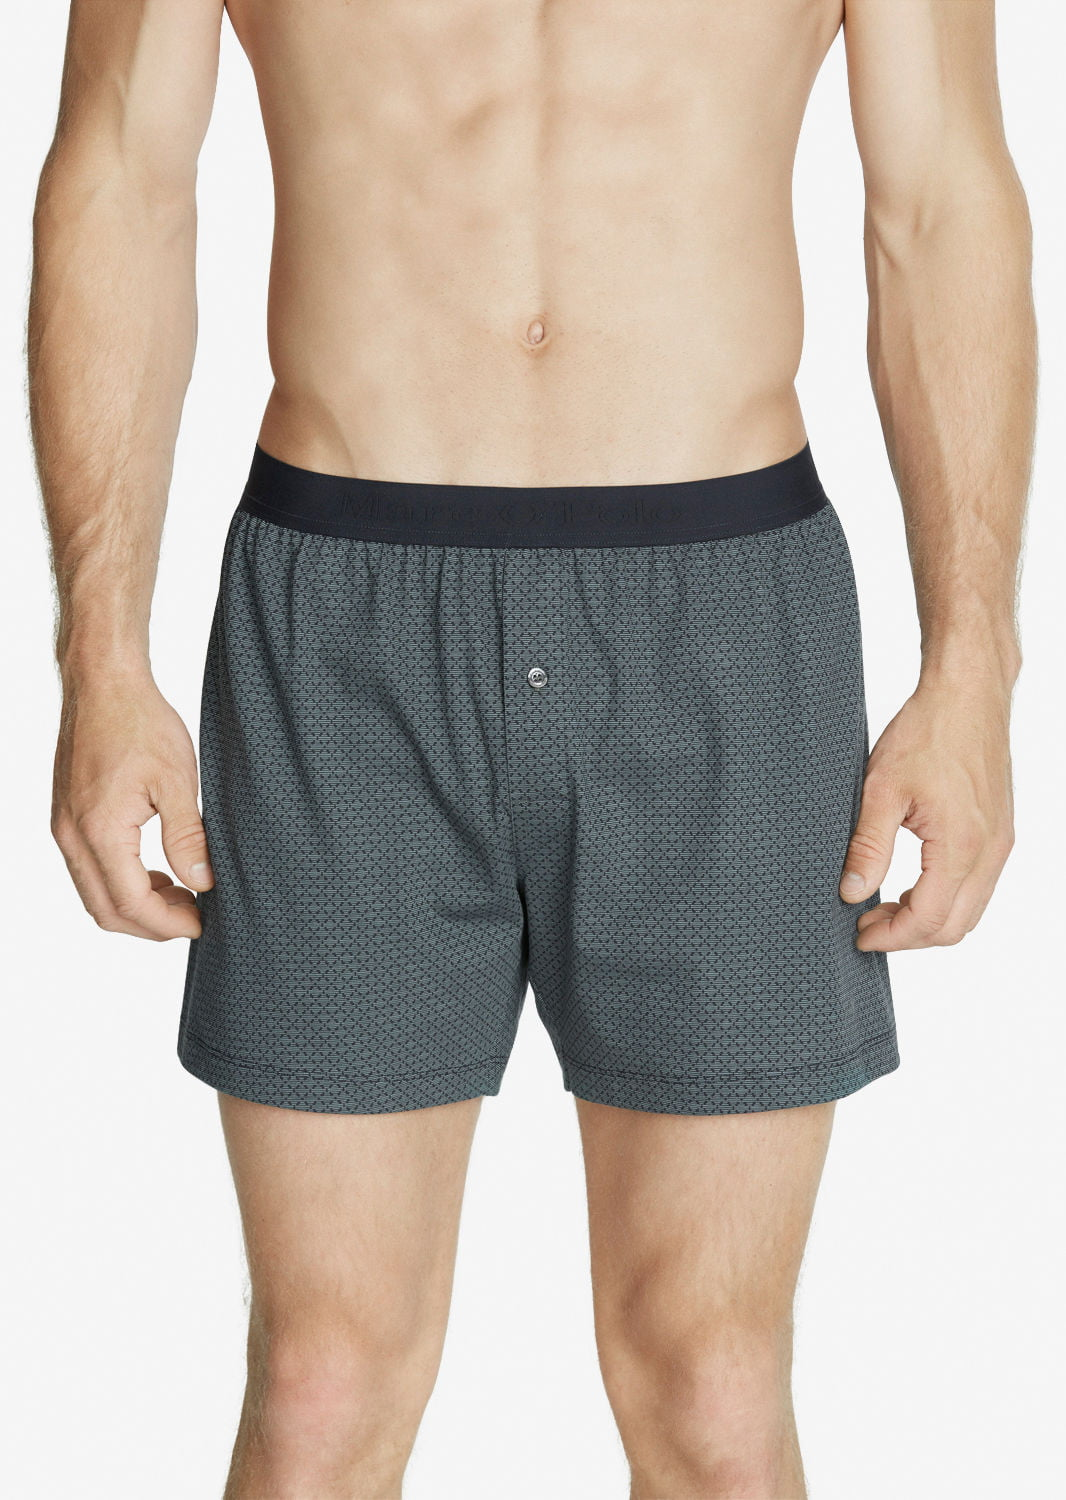 marc o polo shorts